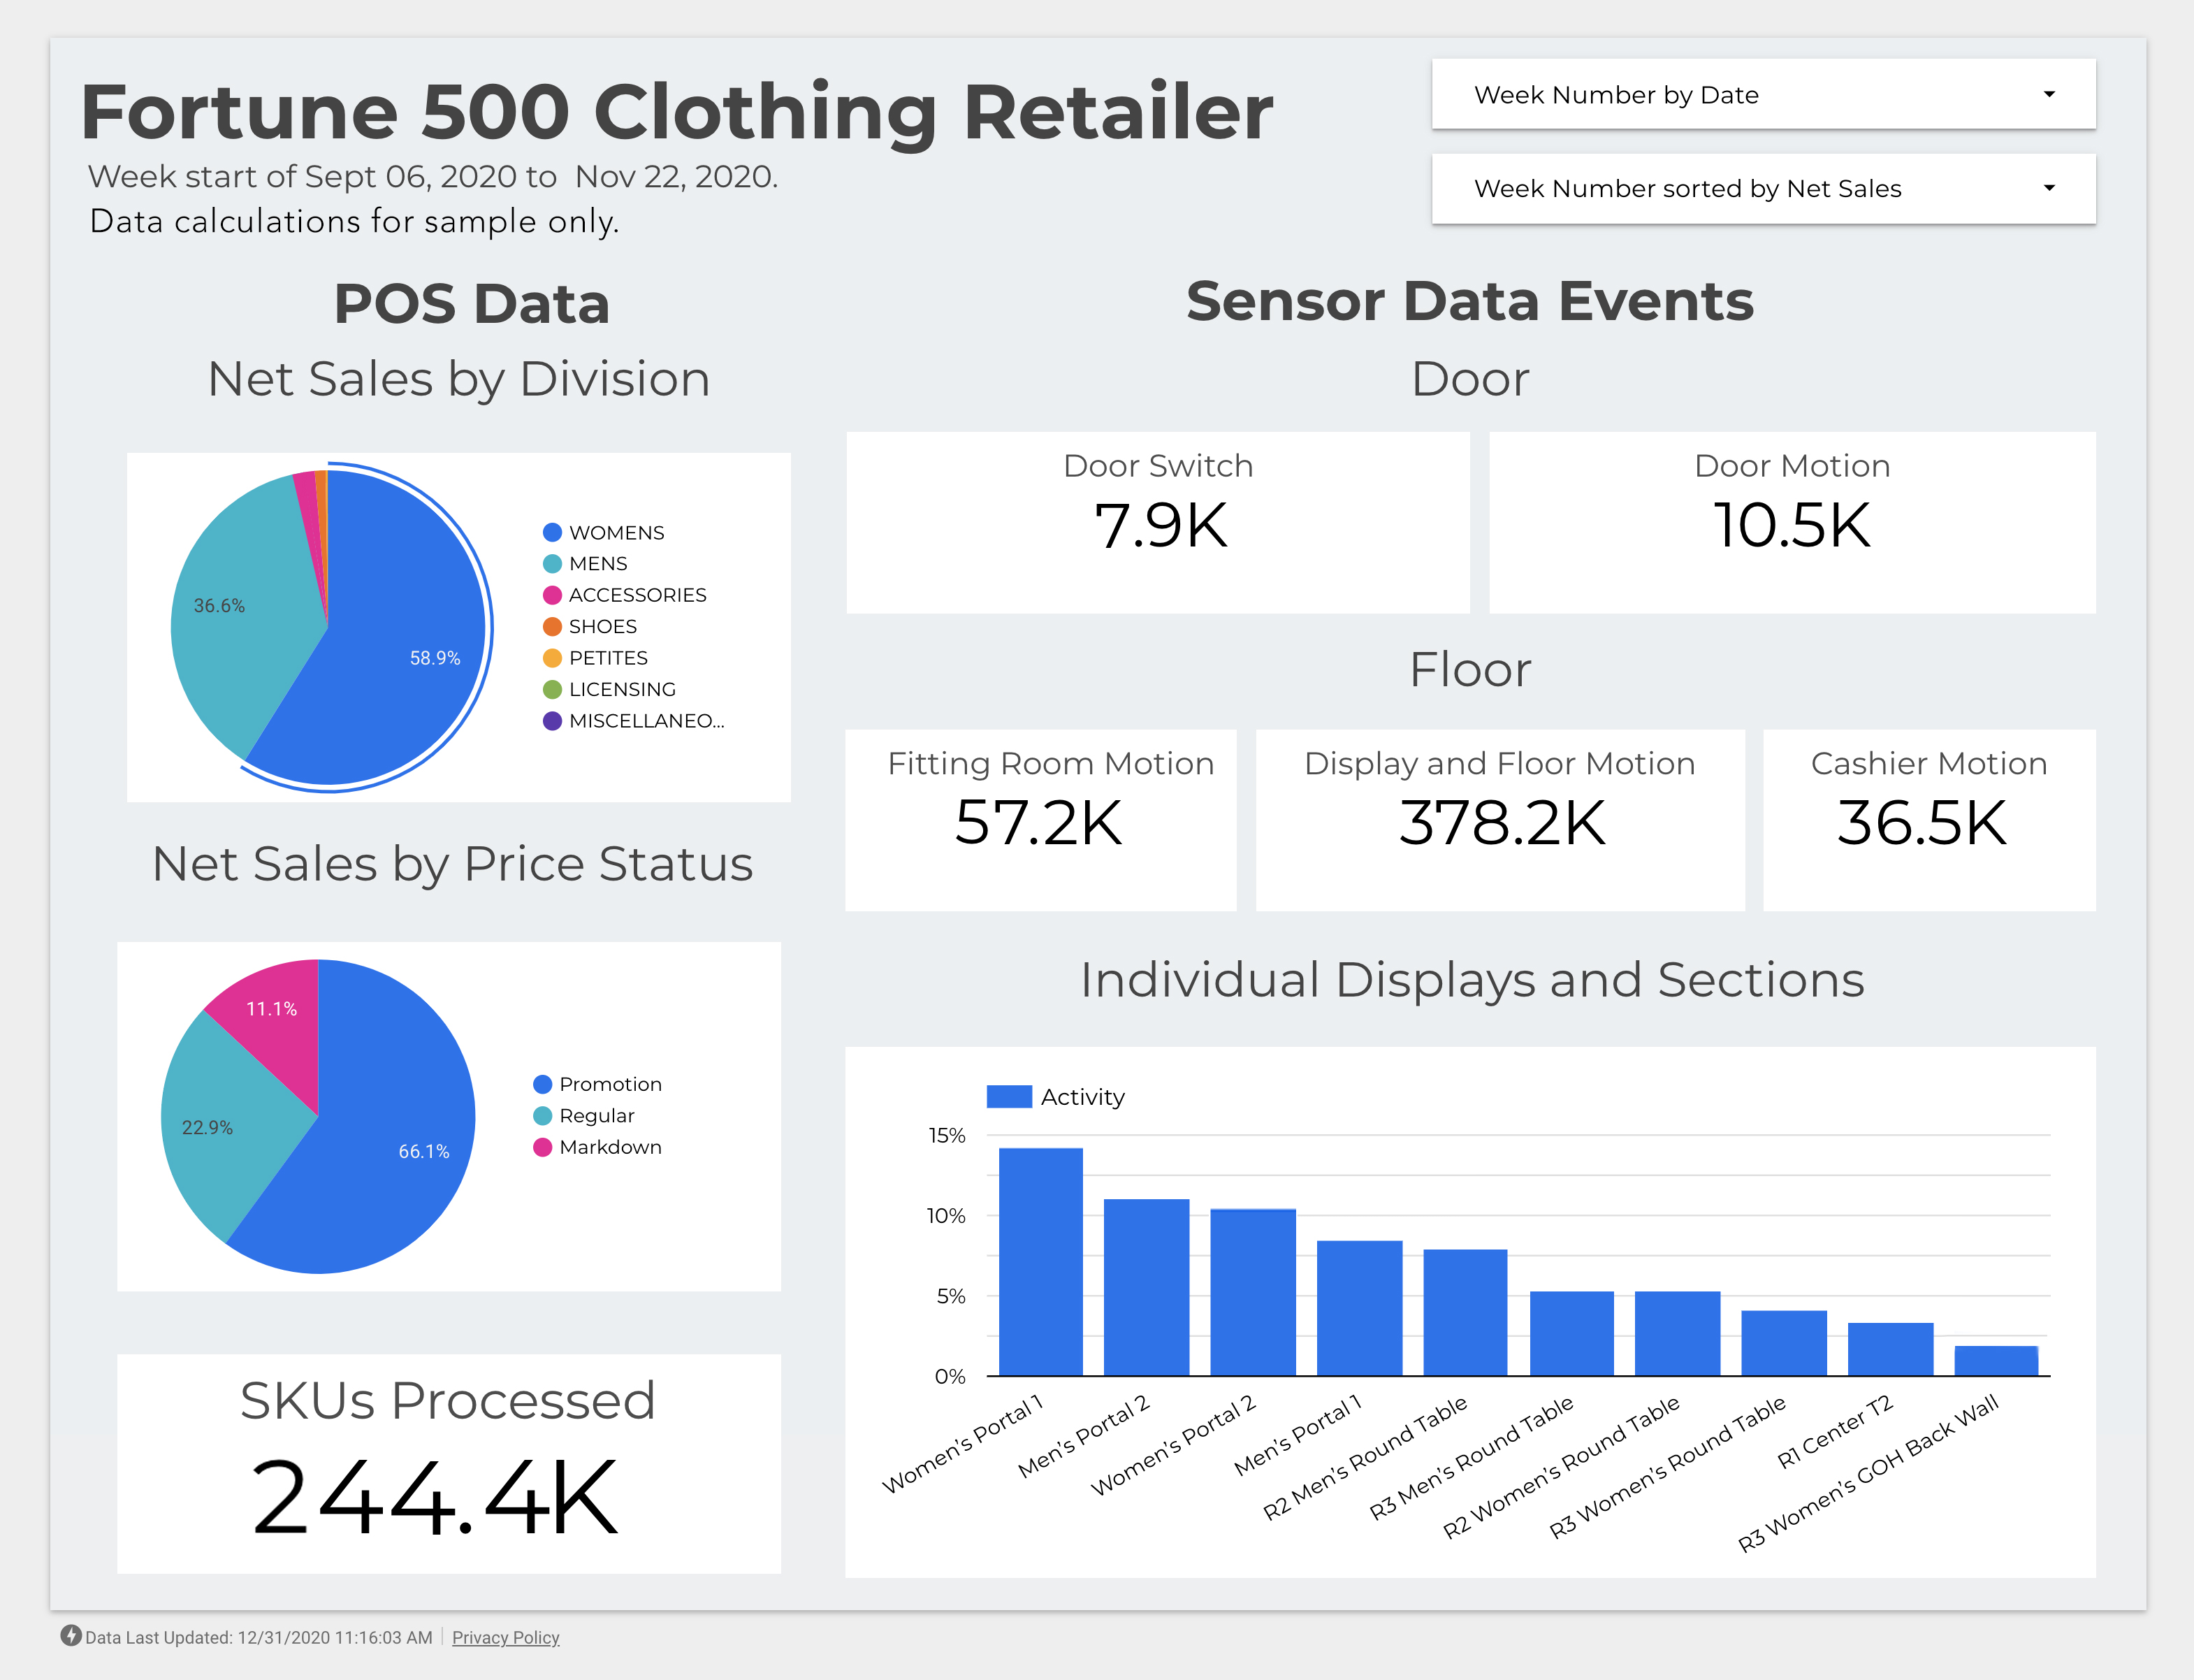 Dashboard example of a fortune 500 clothing retailer showing POS data, sales by division, and data points.